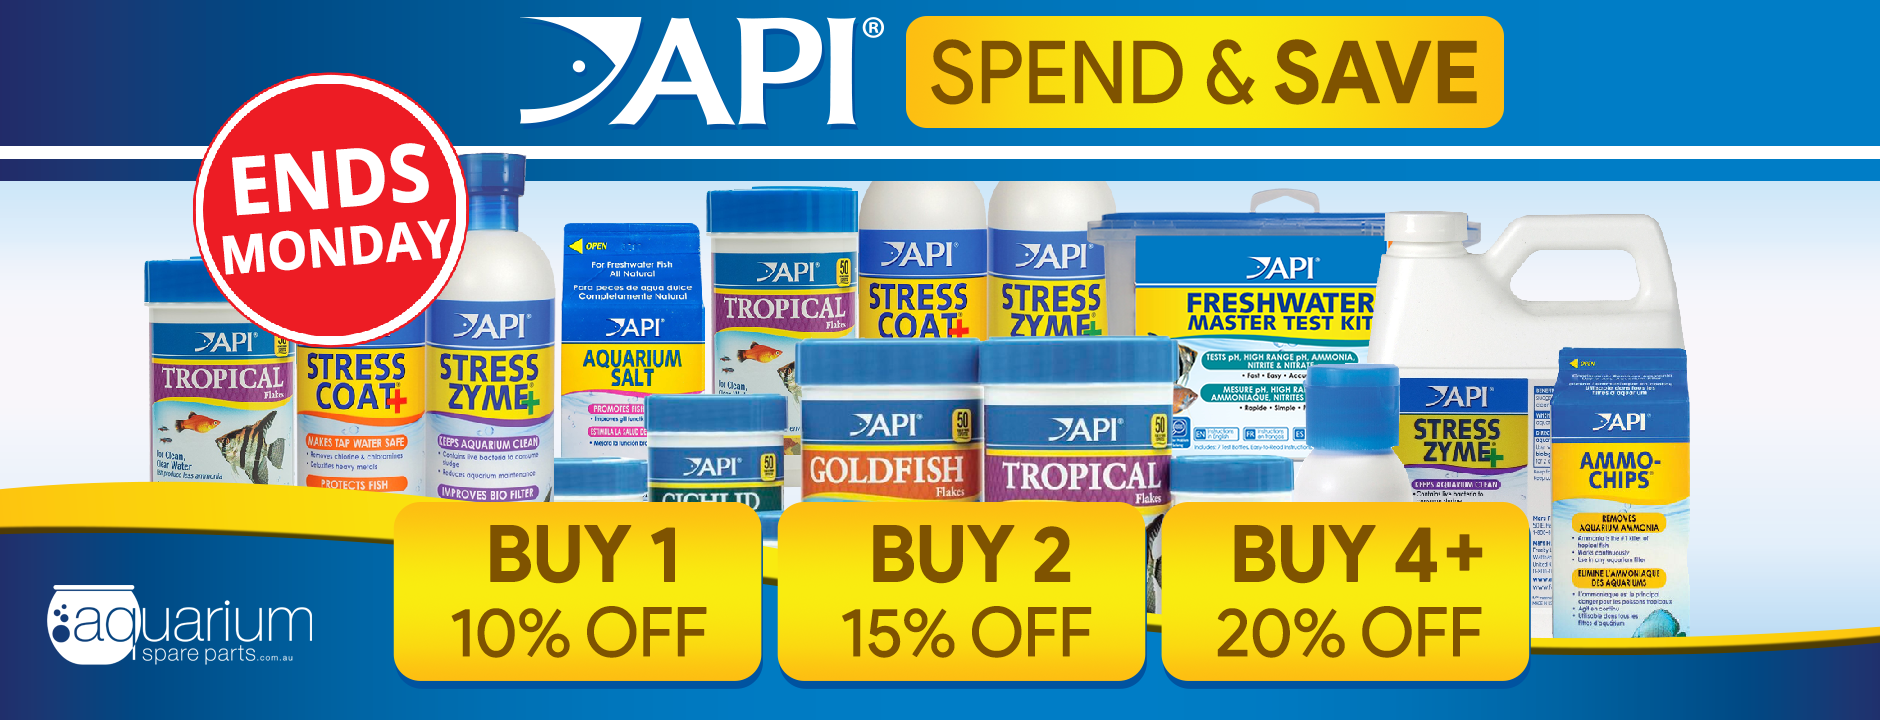 api-spend-and-save-banner.png